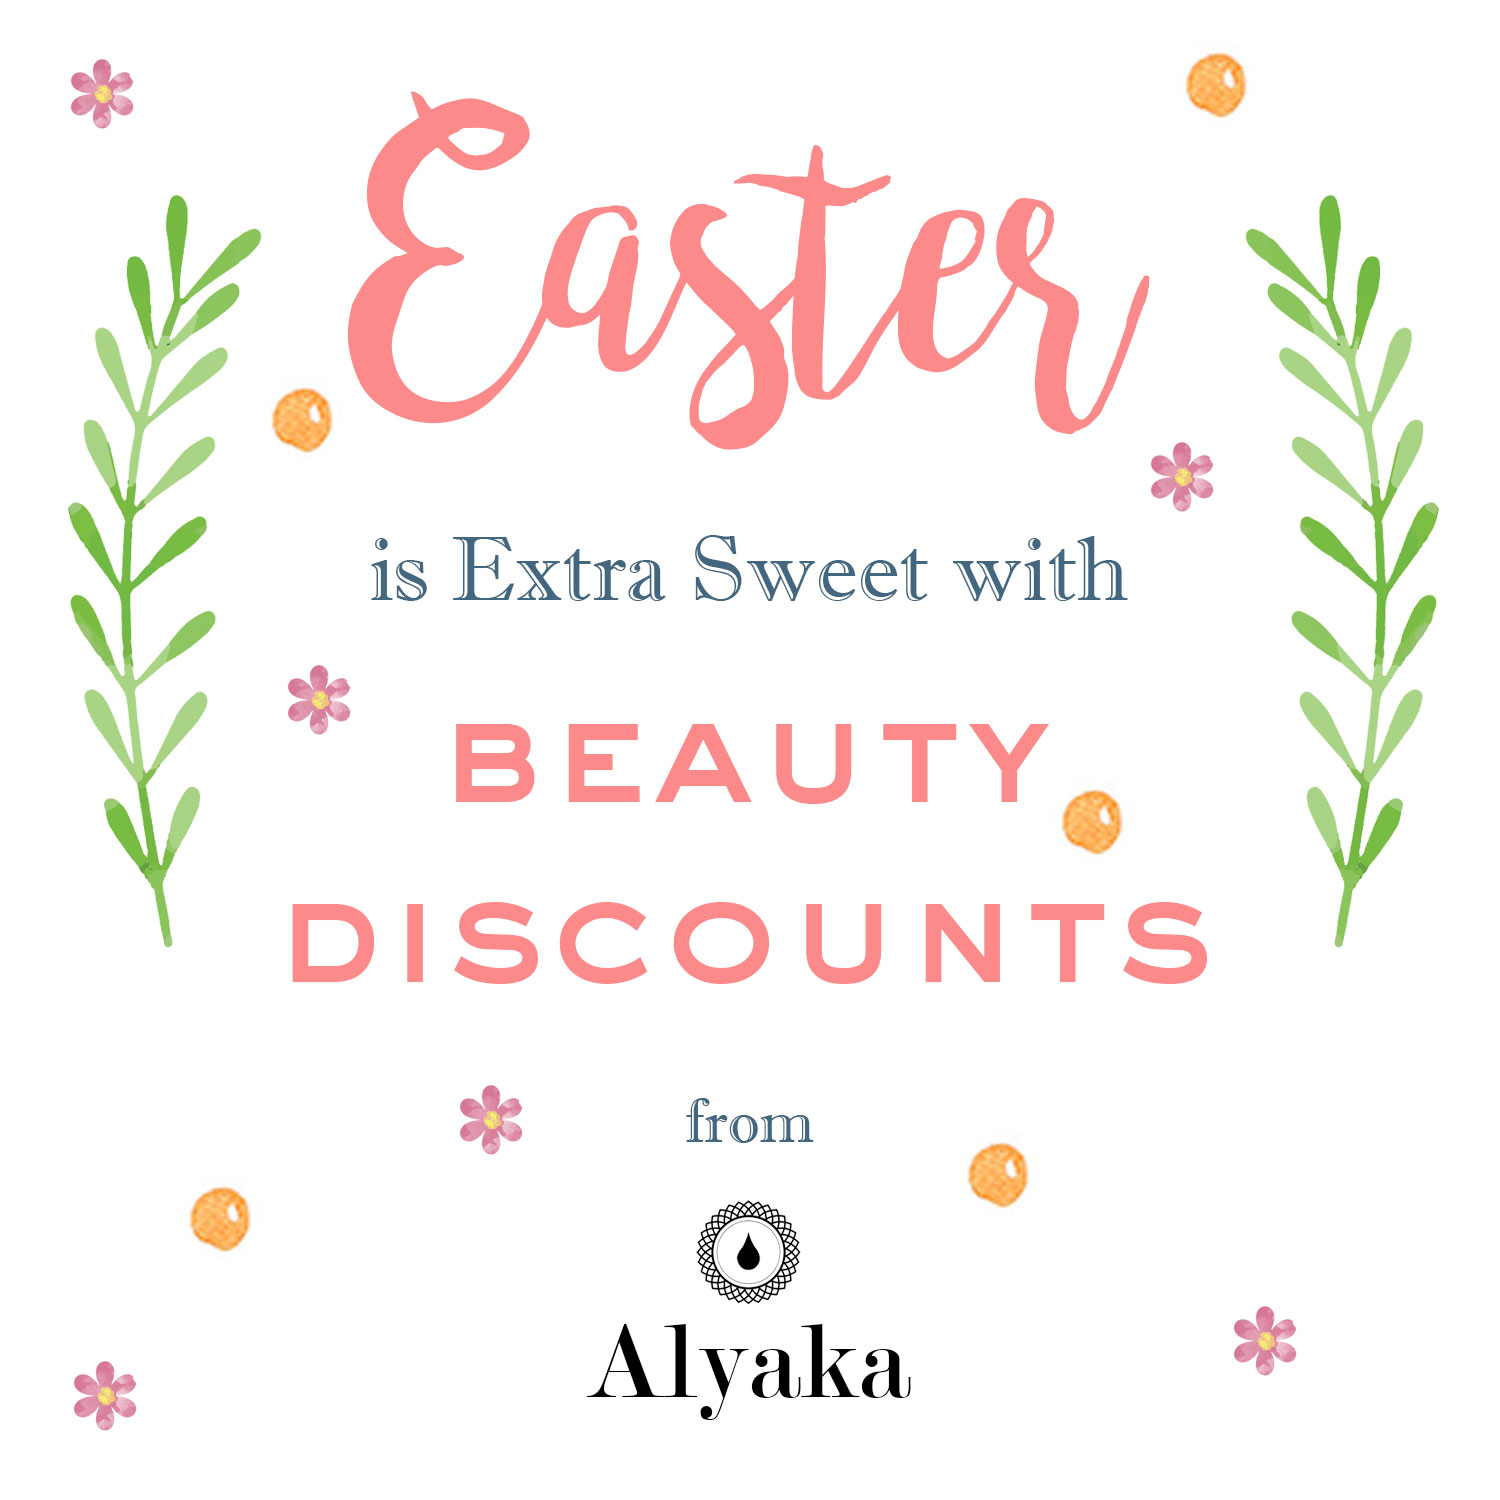 Easter is Extra Sweet with Beauty Discounts from Alyaka